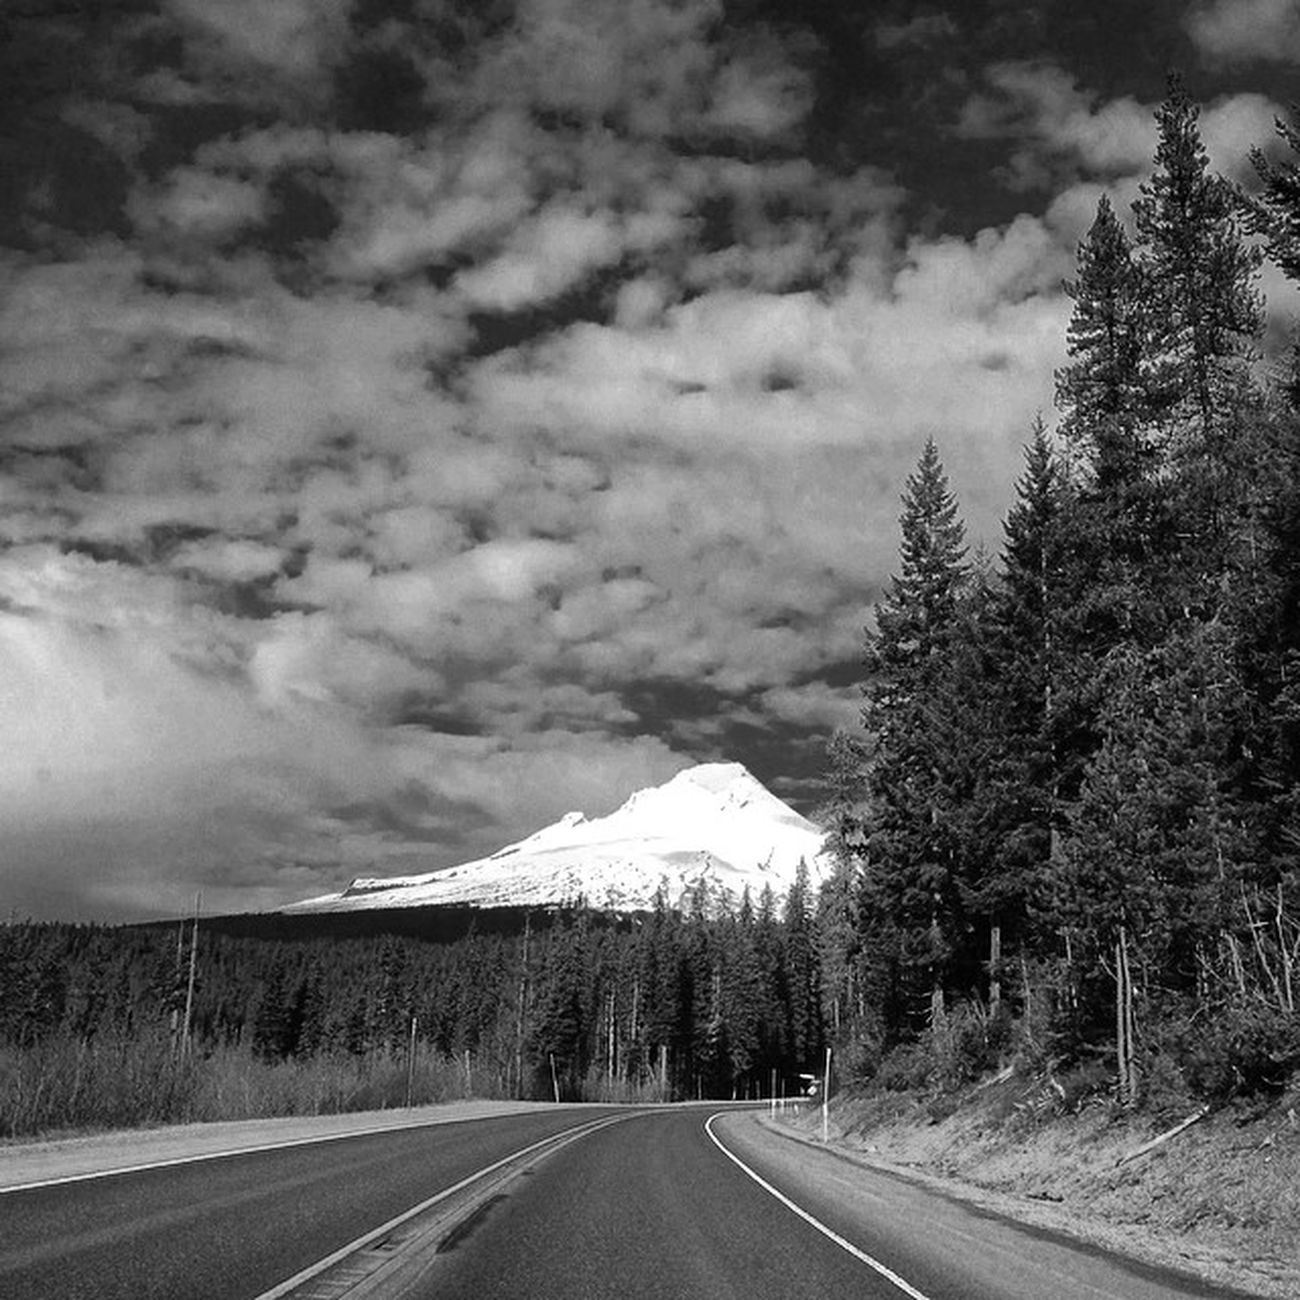 Mt. Hood Mountain MtHood HOODLIFE Hoodriver Livelife Lovelife Blackandwhite Roadtrip Roadporn Itsamazingoutthere